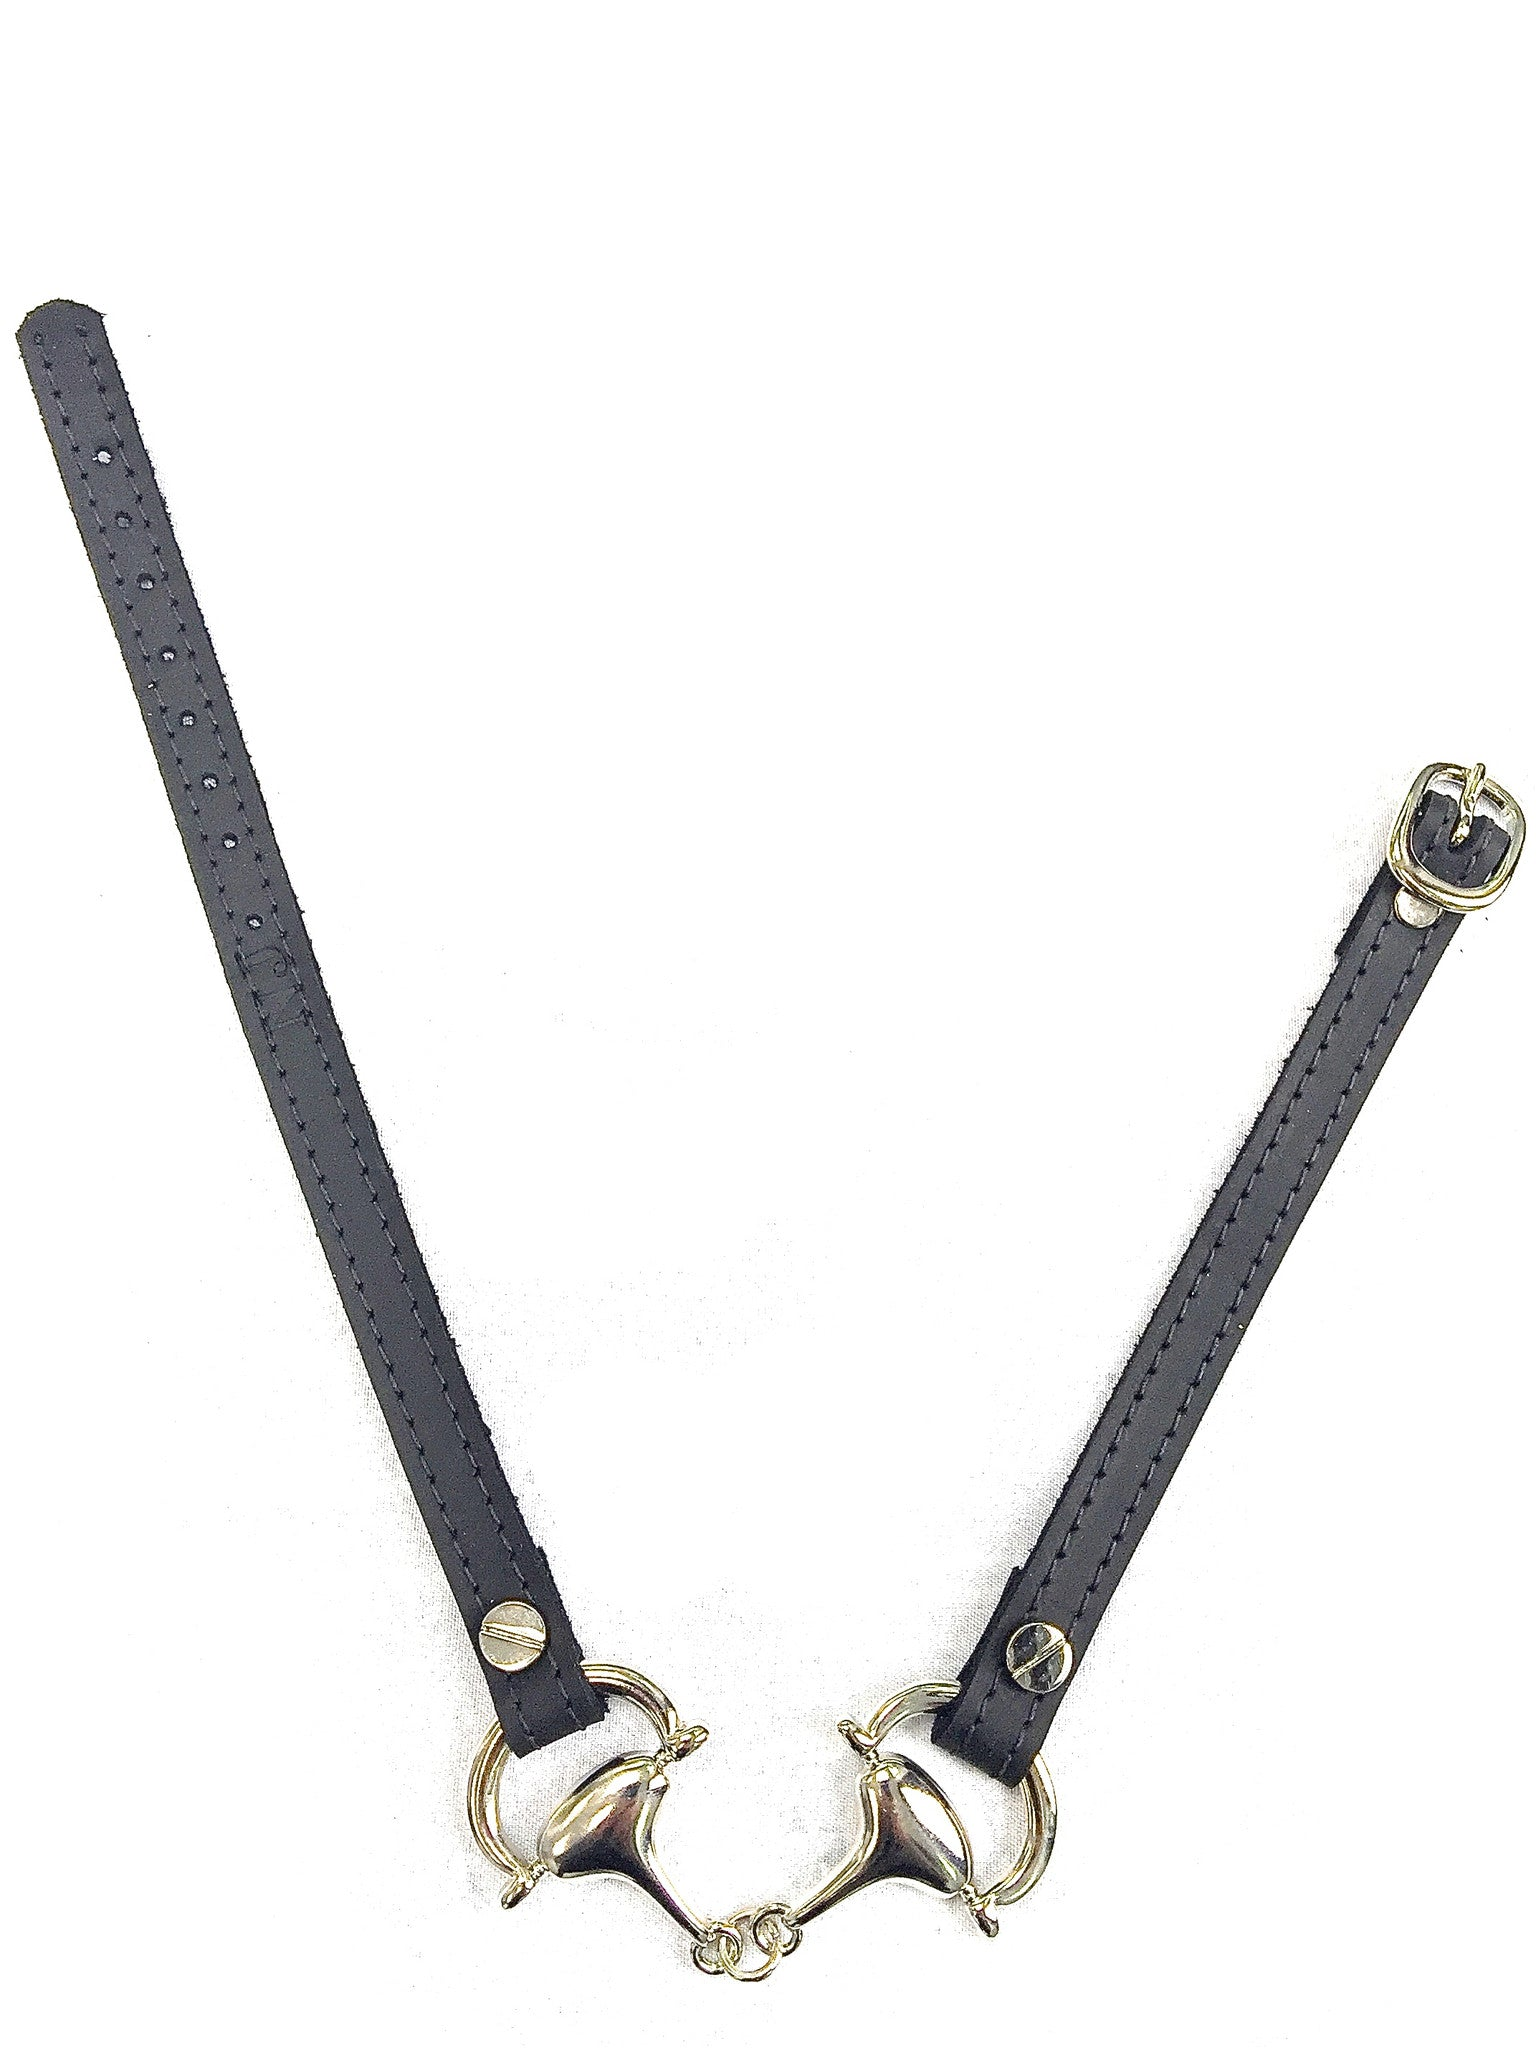 Horse Bit 2.0 Choker necklace Black